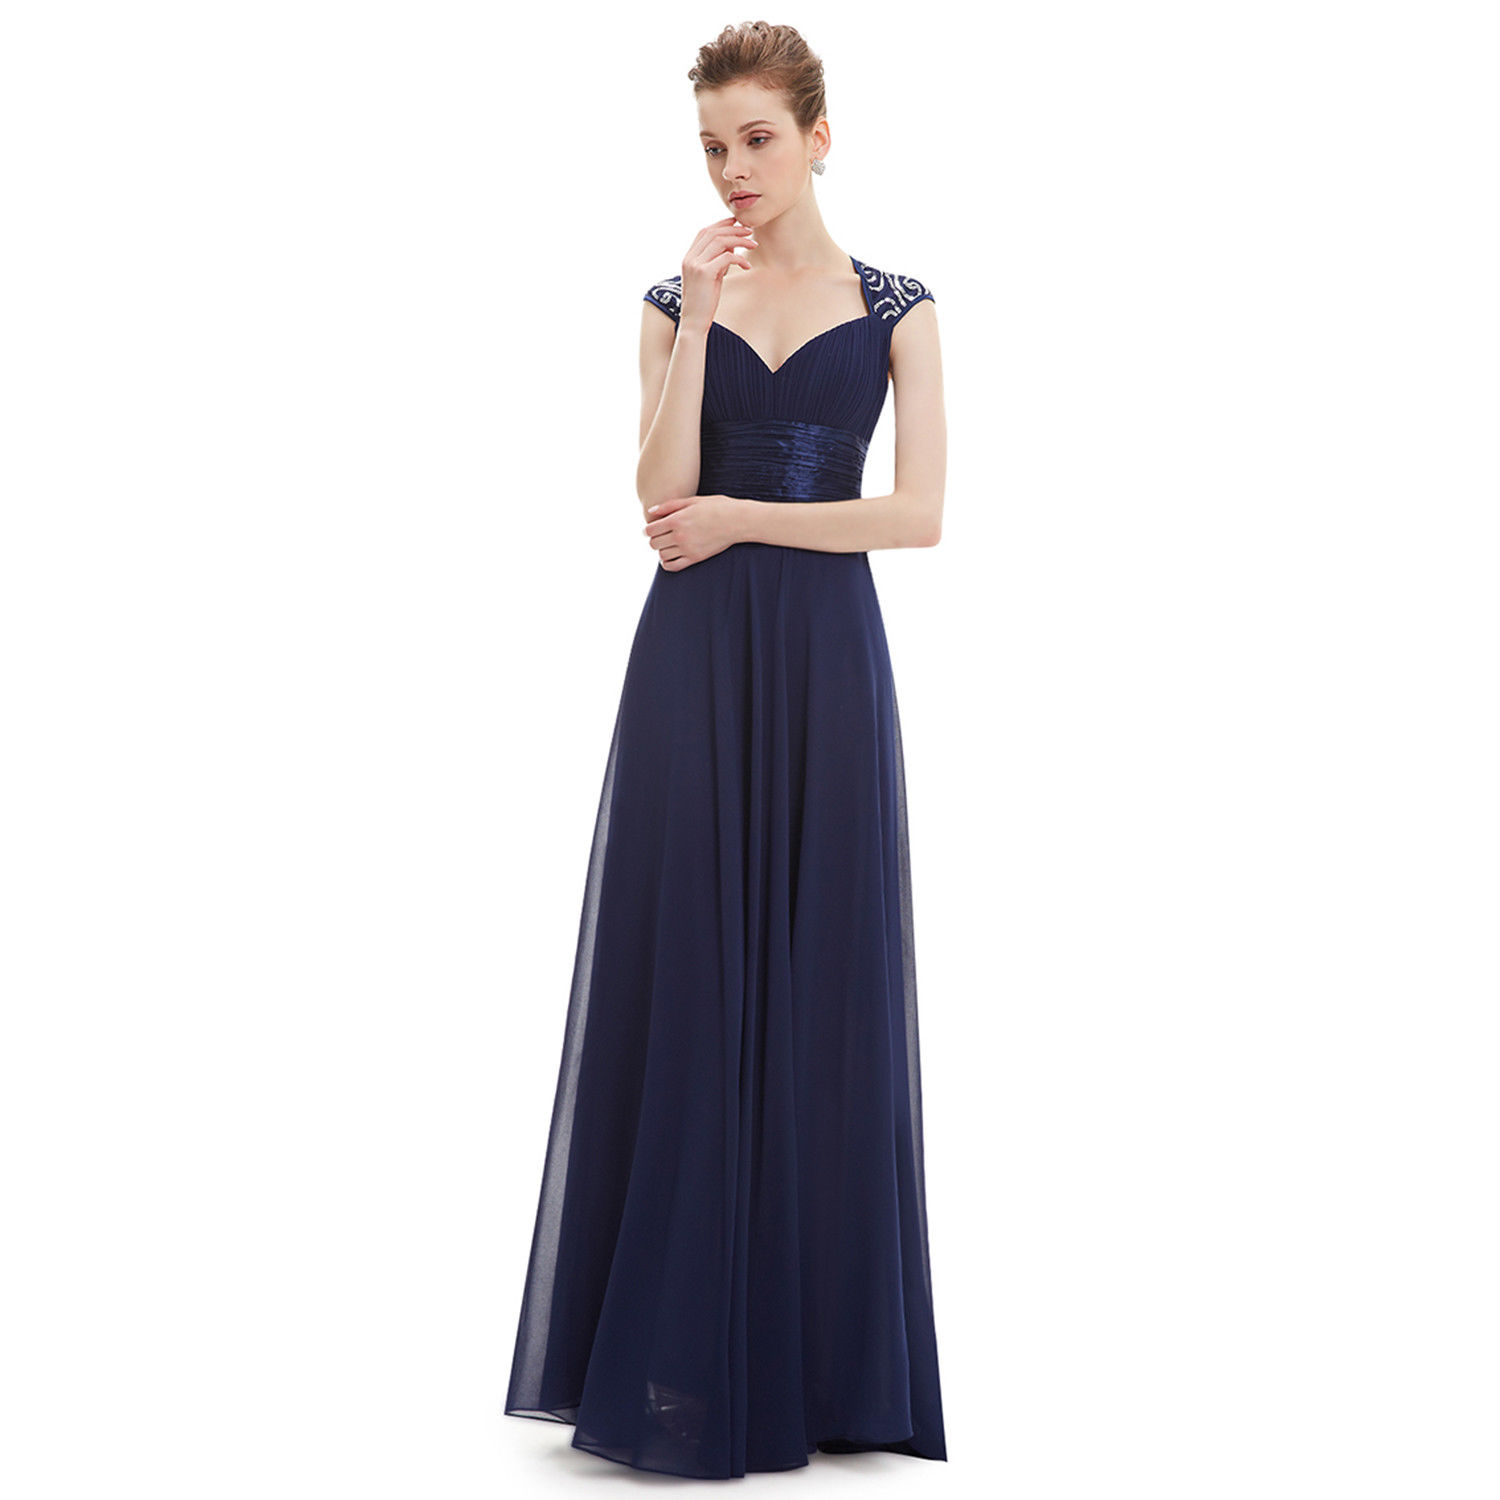 1776d892453c2 Long Chiffon Bridesmaid Dress Evening Formal Party Ball Gown Prom 09672  Size 16